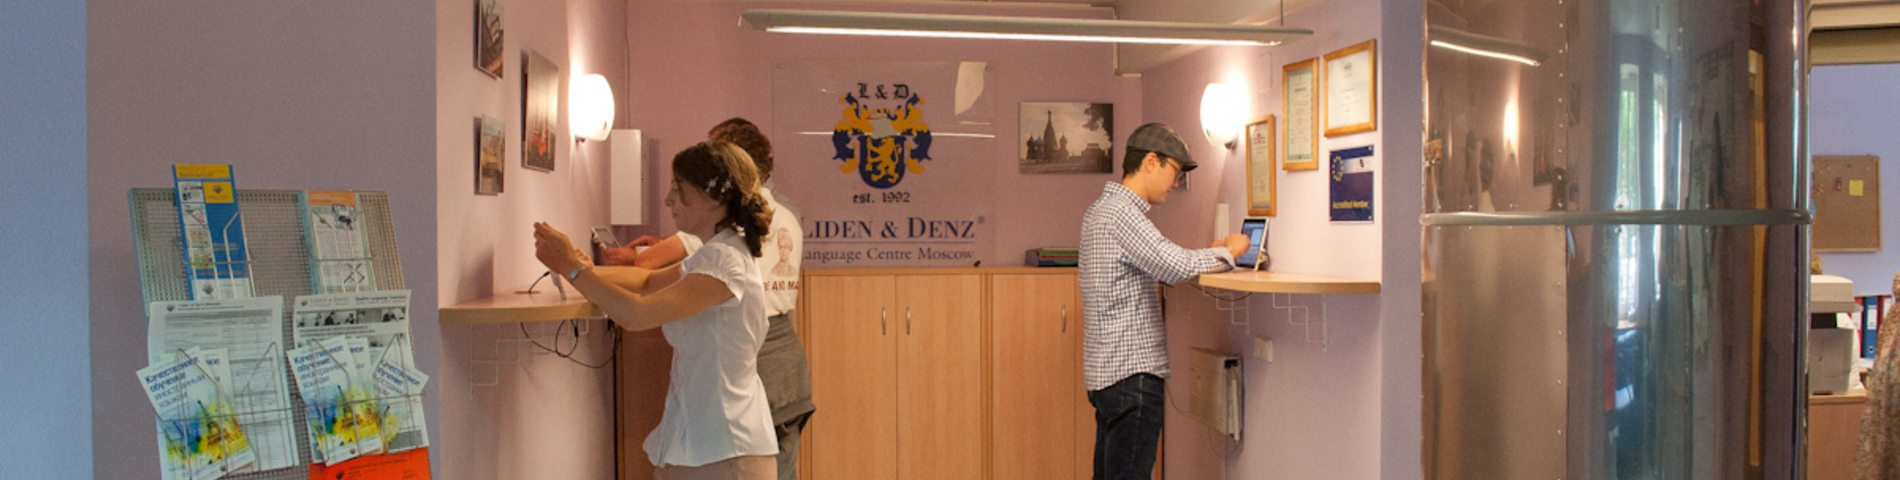 Liden & Denz Language Centre picture 8